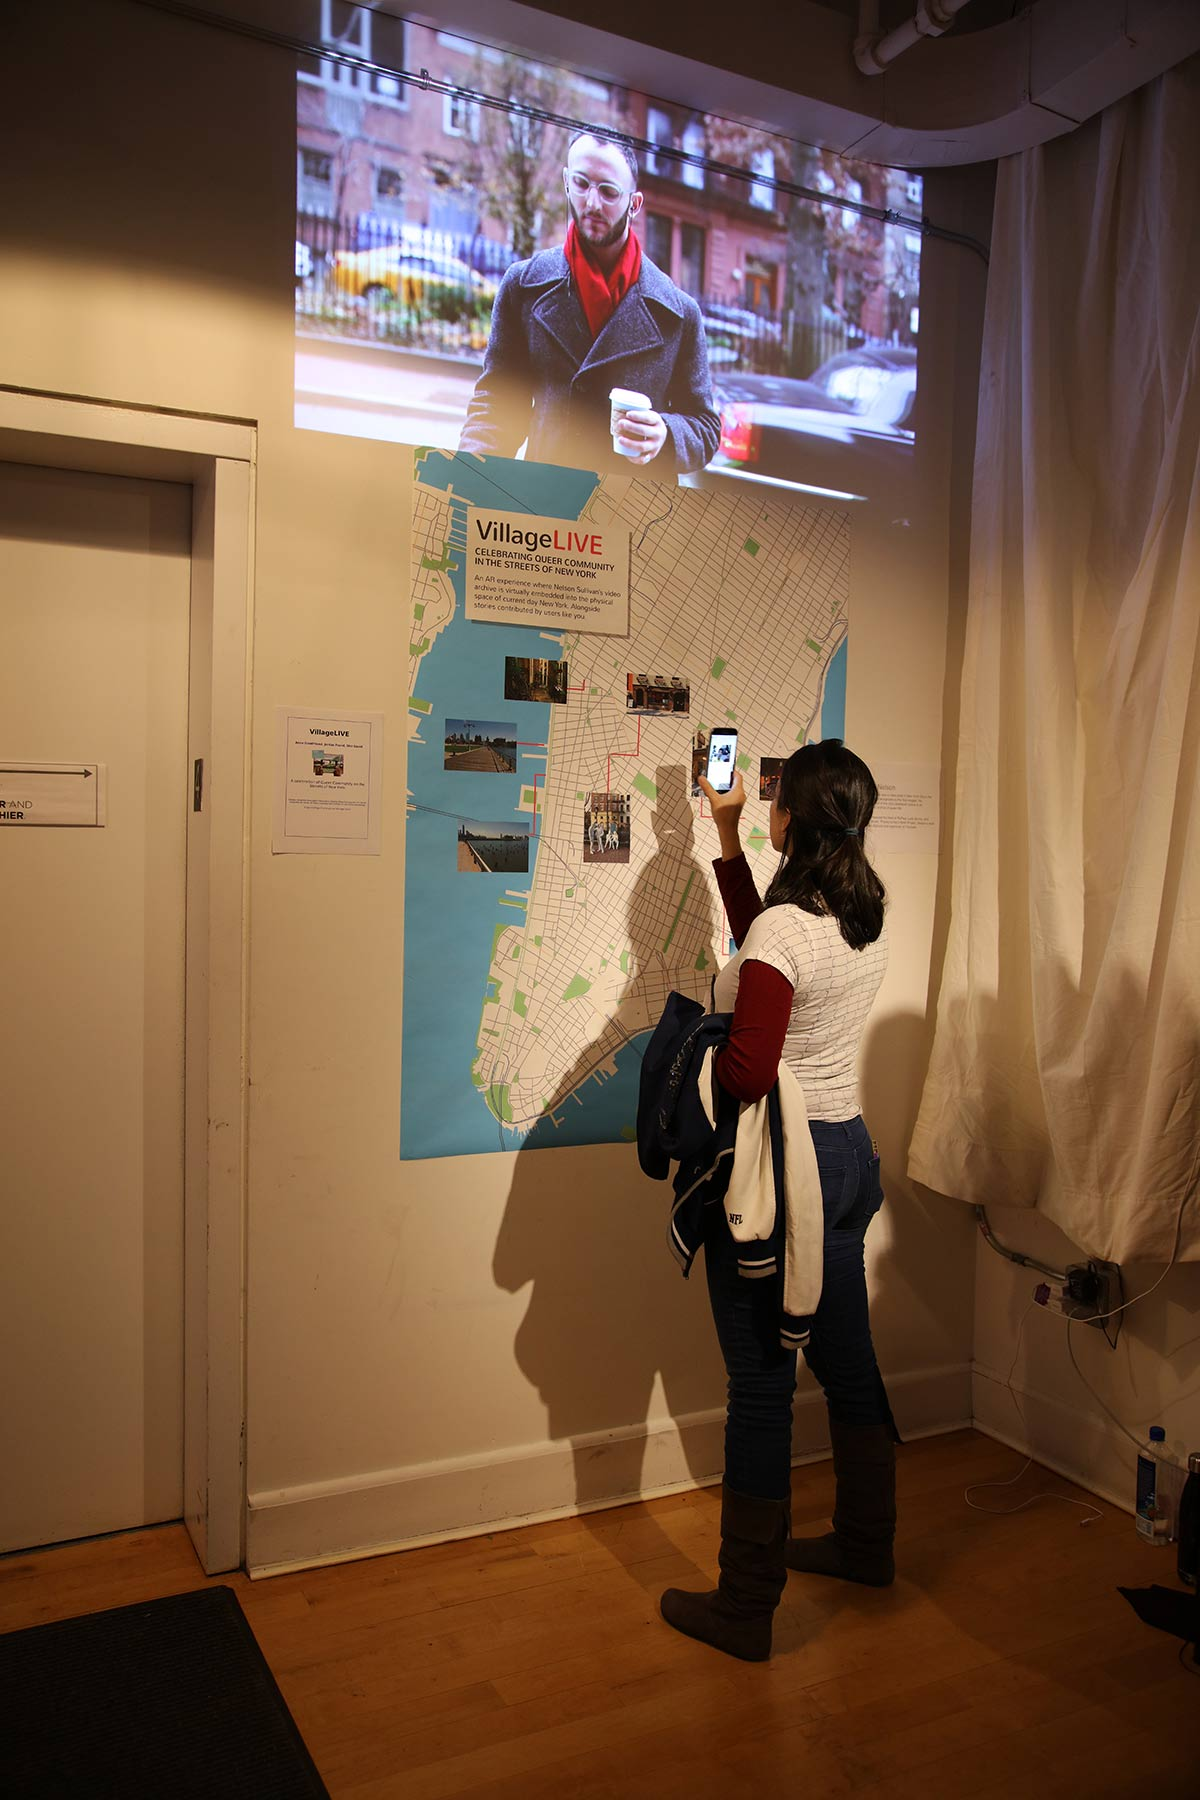 A person with an iphone in front of a map of lower Manhattan, that triggers video footage up above